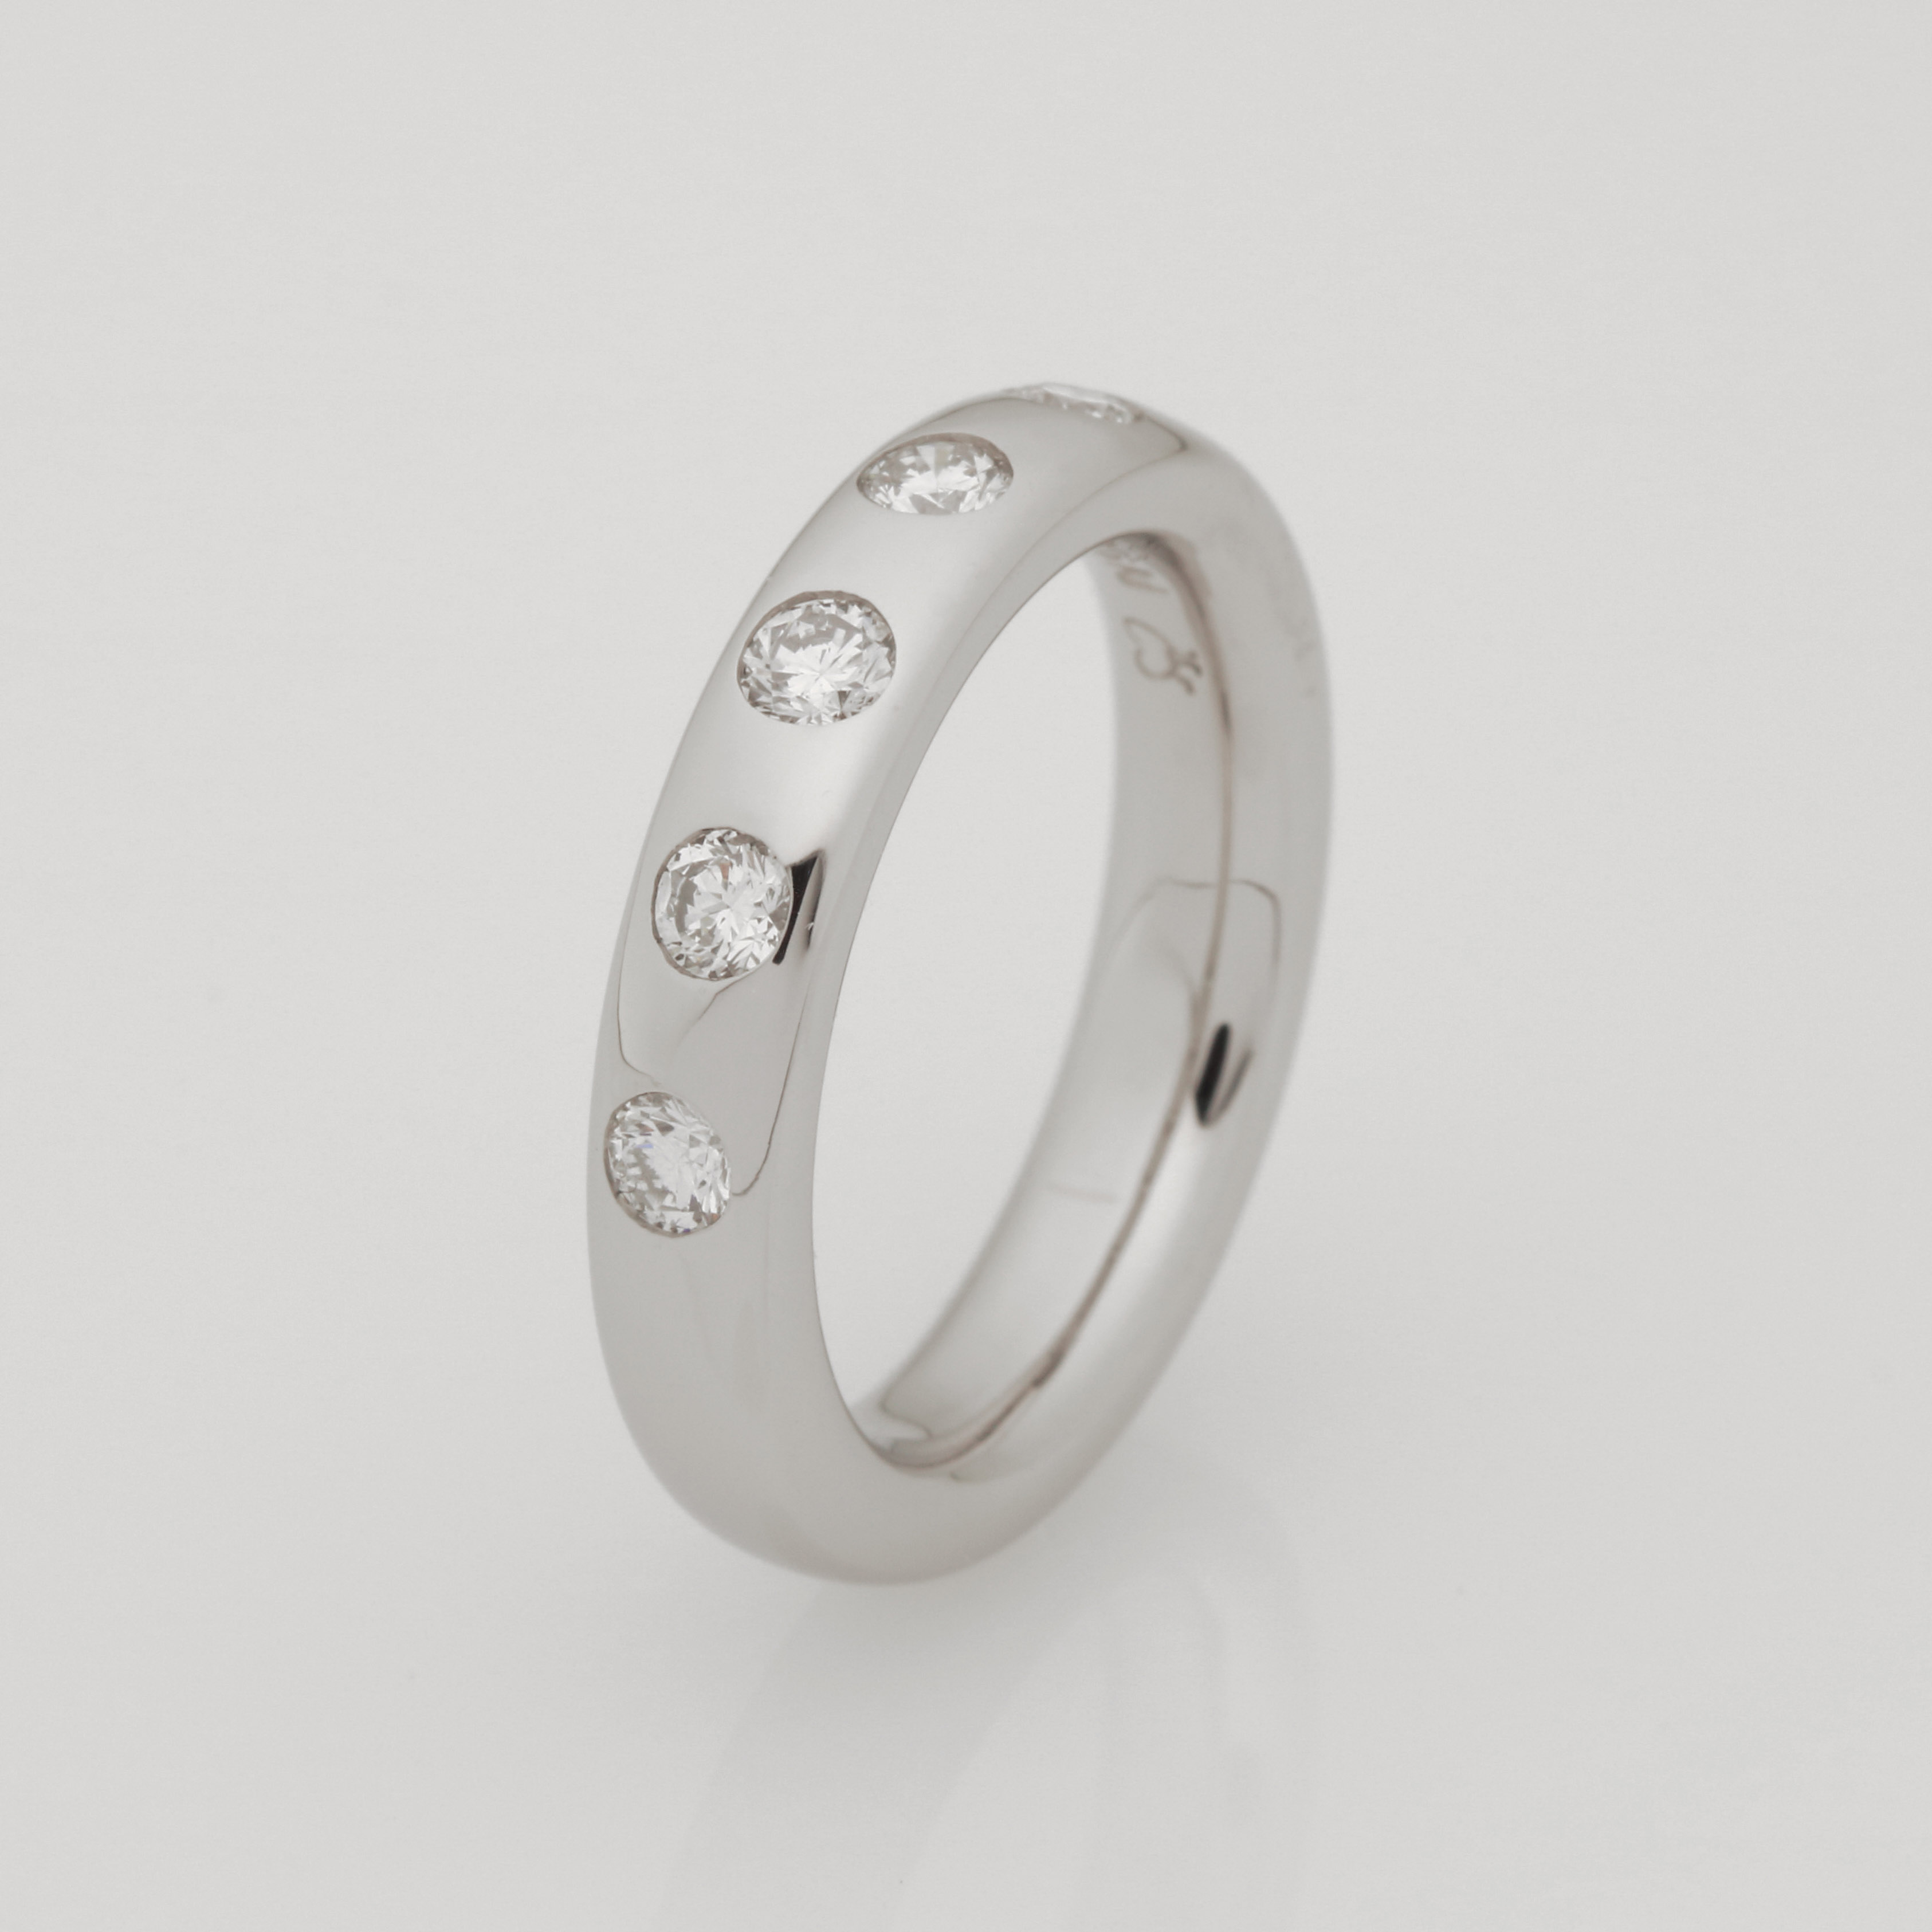 Ladies handmade palladium and diamond ring